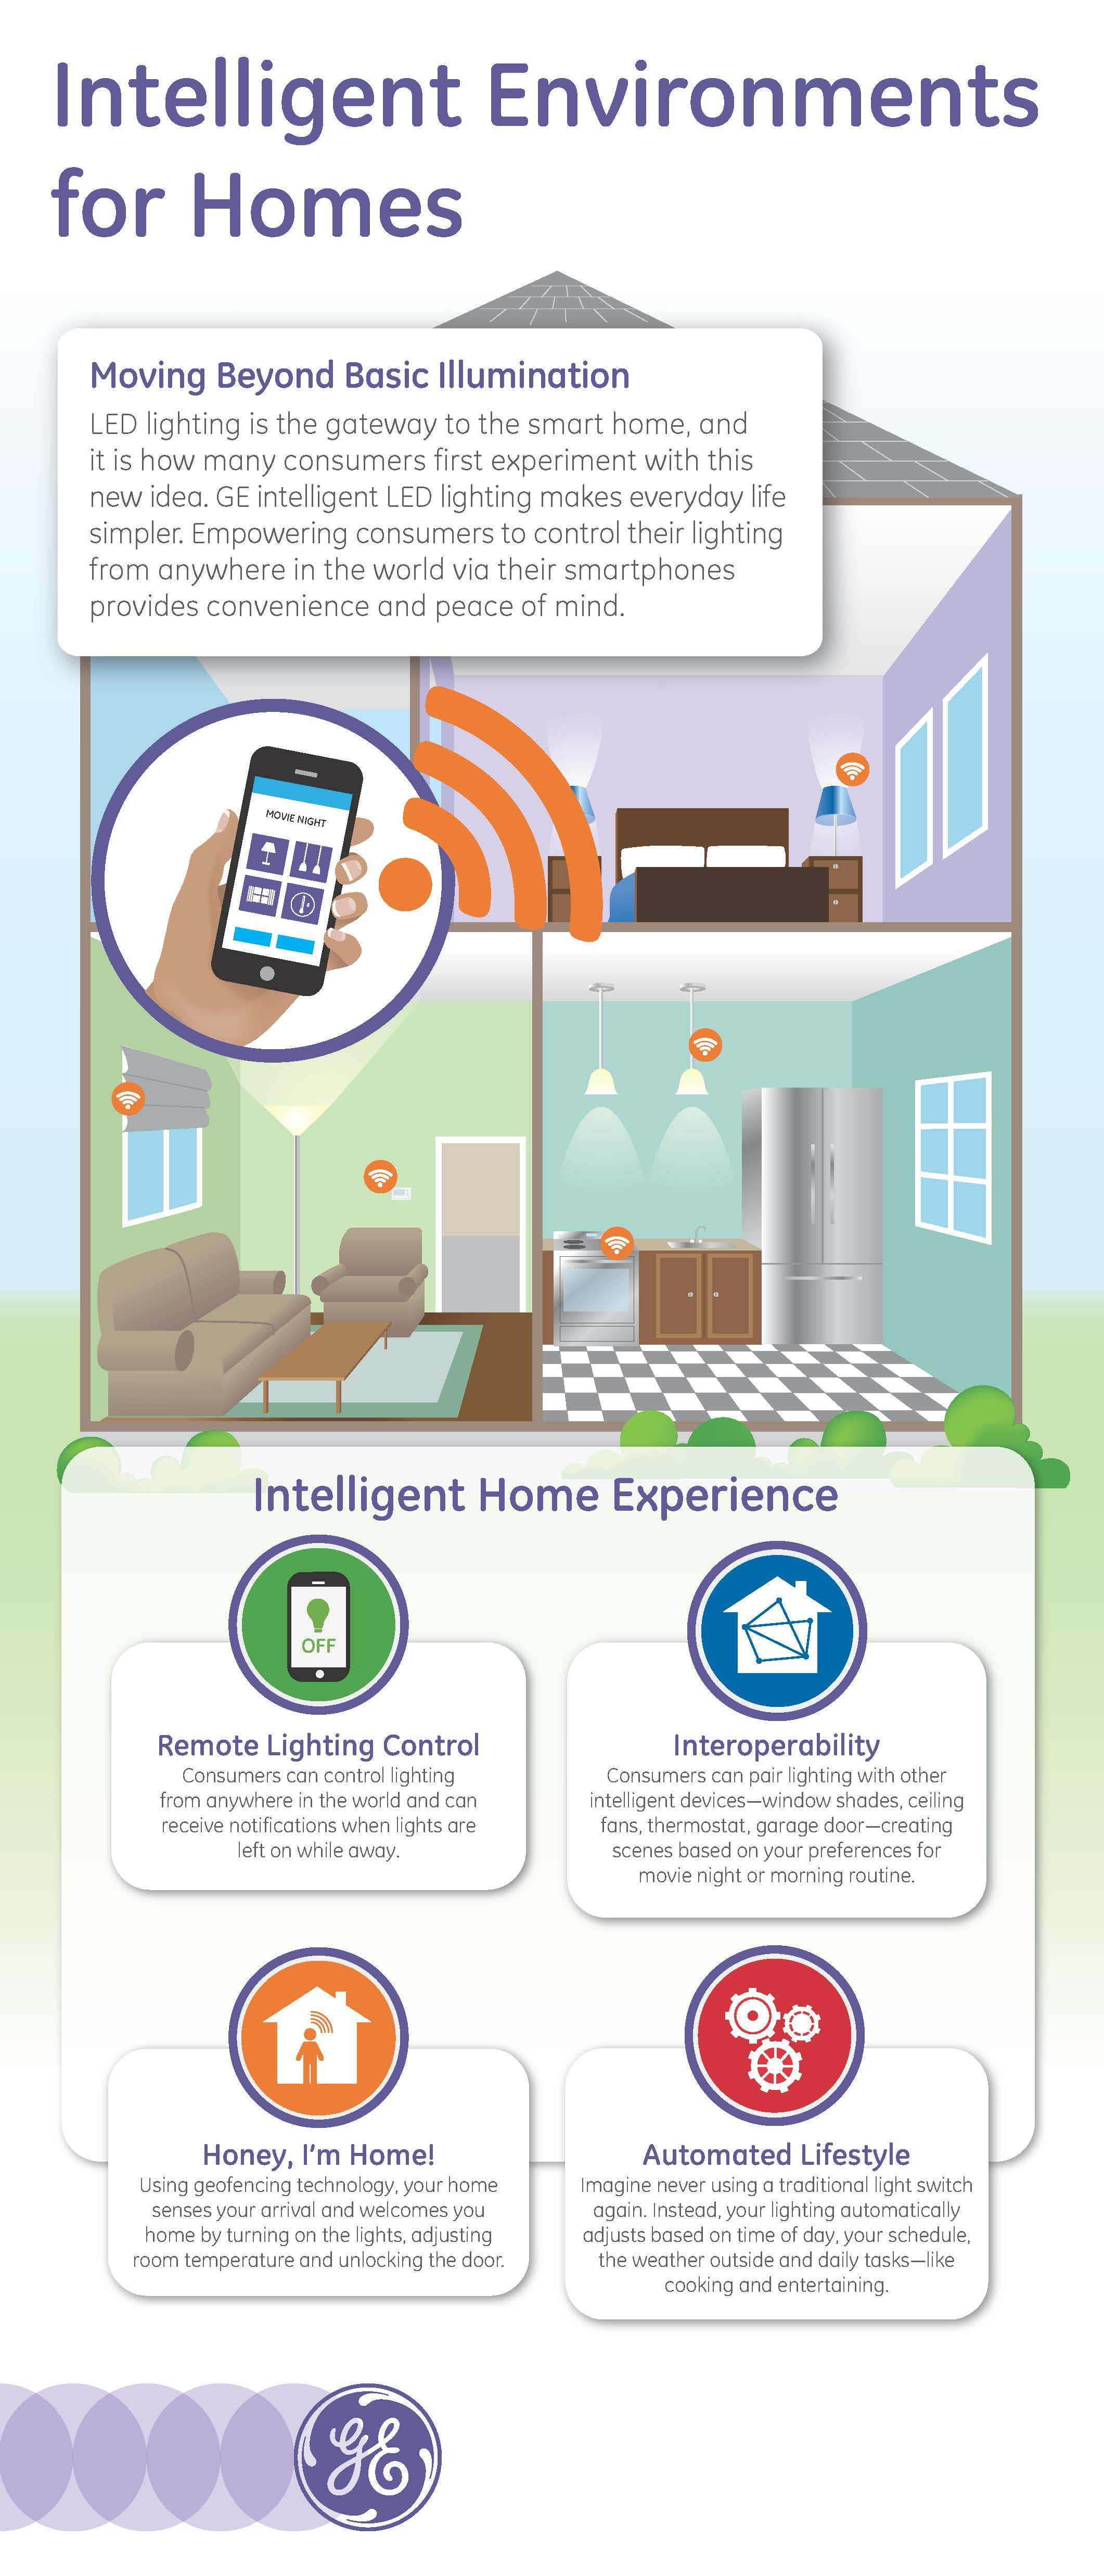 GE Intelligent LED Lighting Connects With Apple® HomeKit Ecosystem |  Business Wire